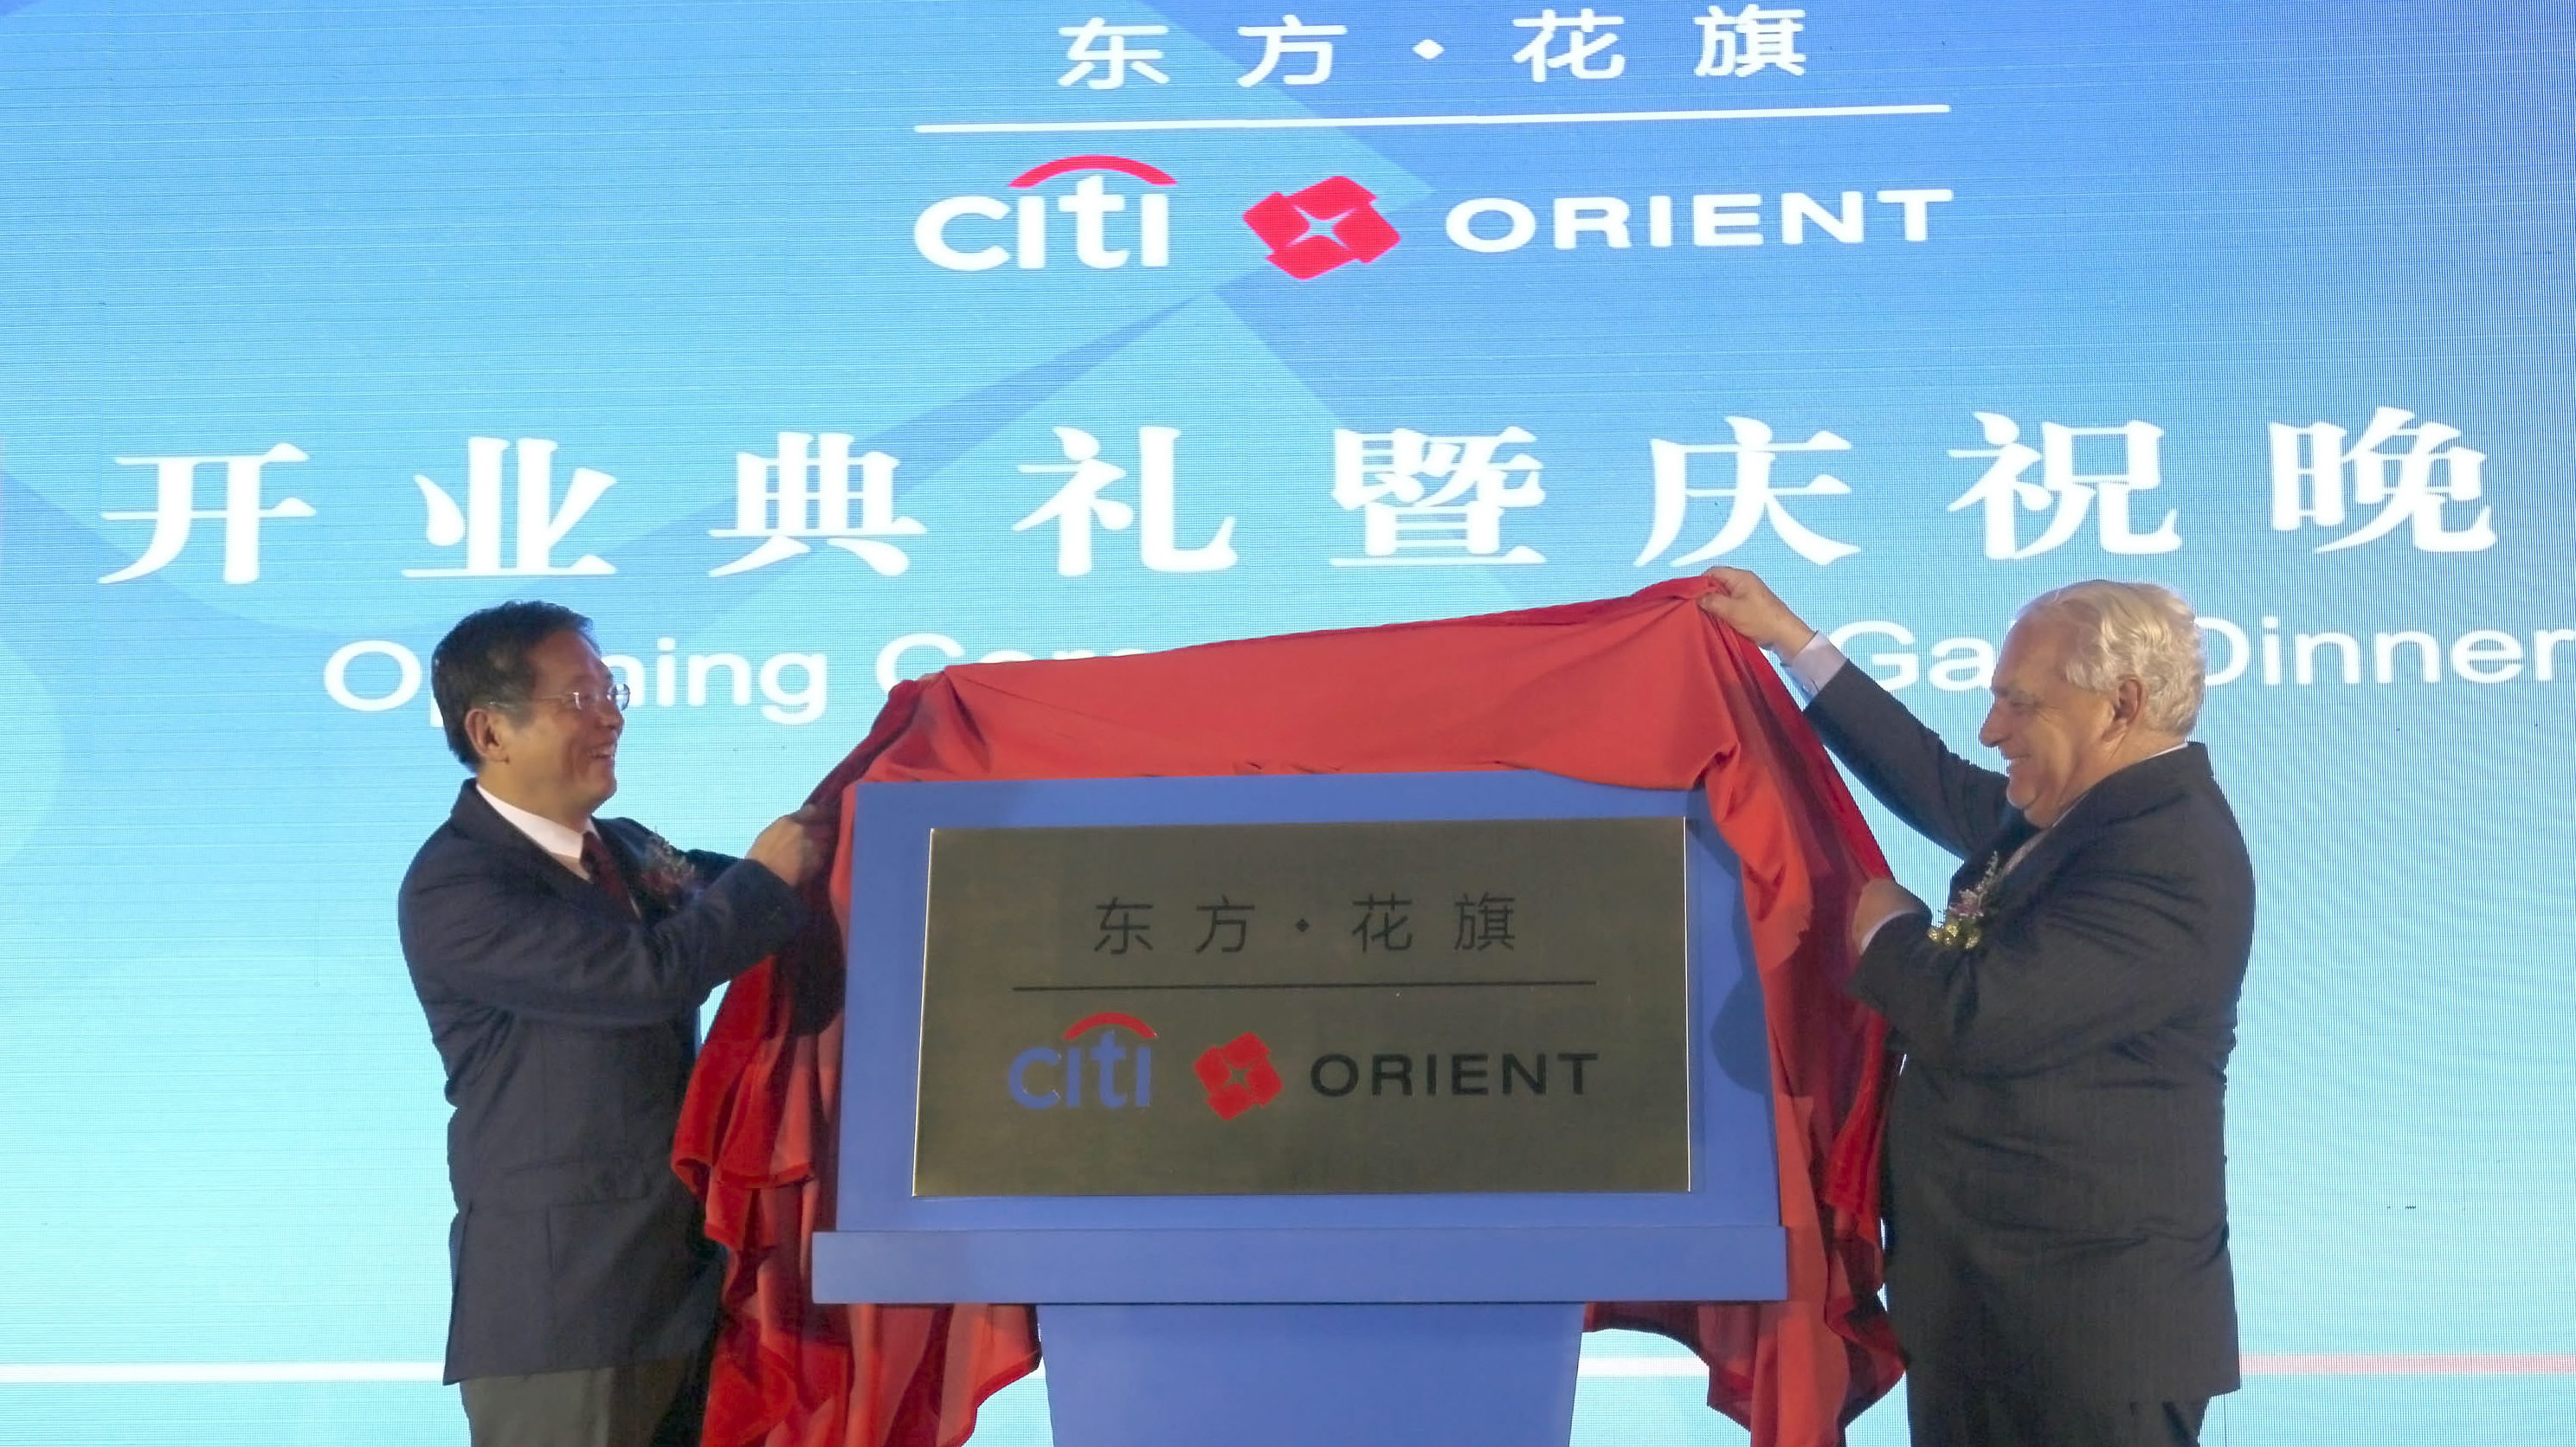 Shanghai Vice Mayor Tu Guangshao, left, and Lewis Kaden, Vice Chairman at Citigroup, right, unveil the plate of Citi Orient Securities Company Ltd Monday Aug. 6, 2012 in Shanghai, China.(AP Photo)